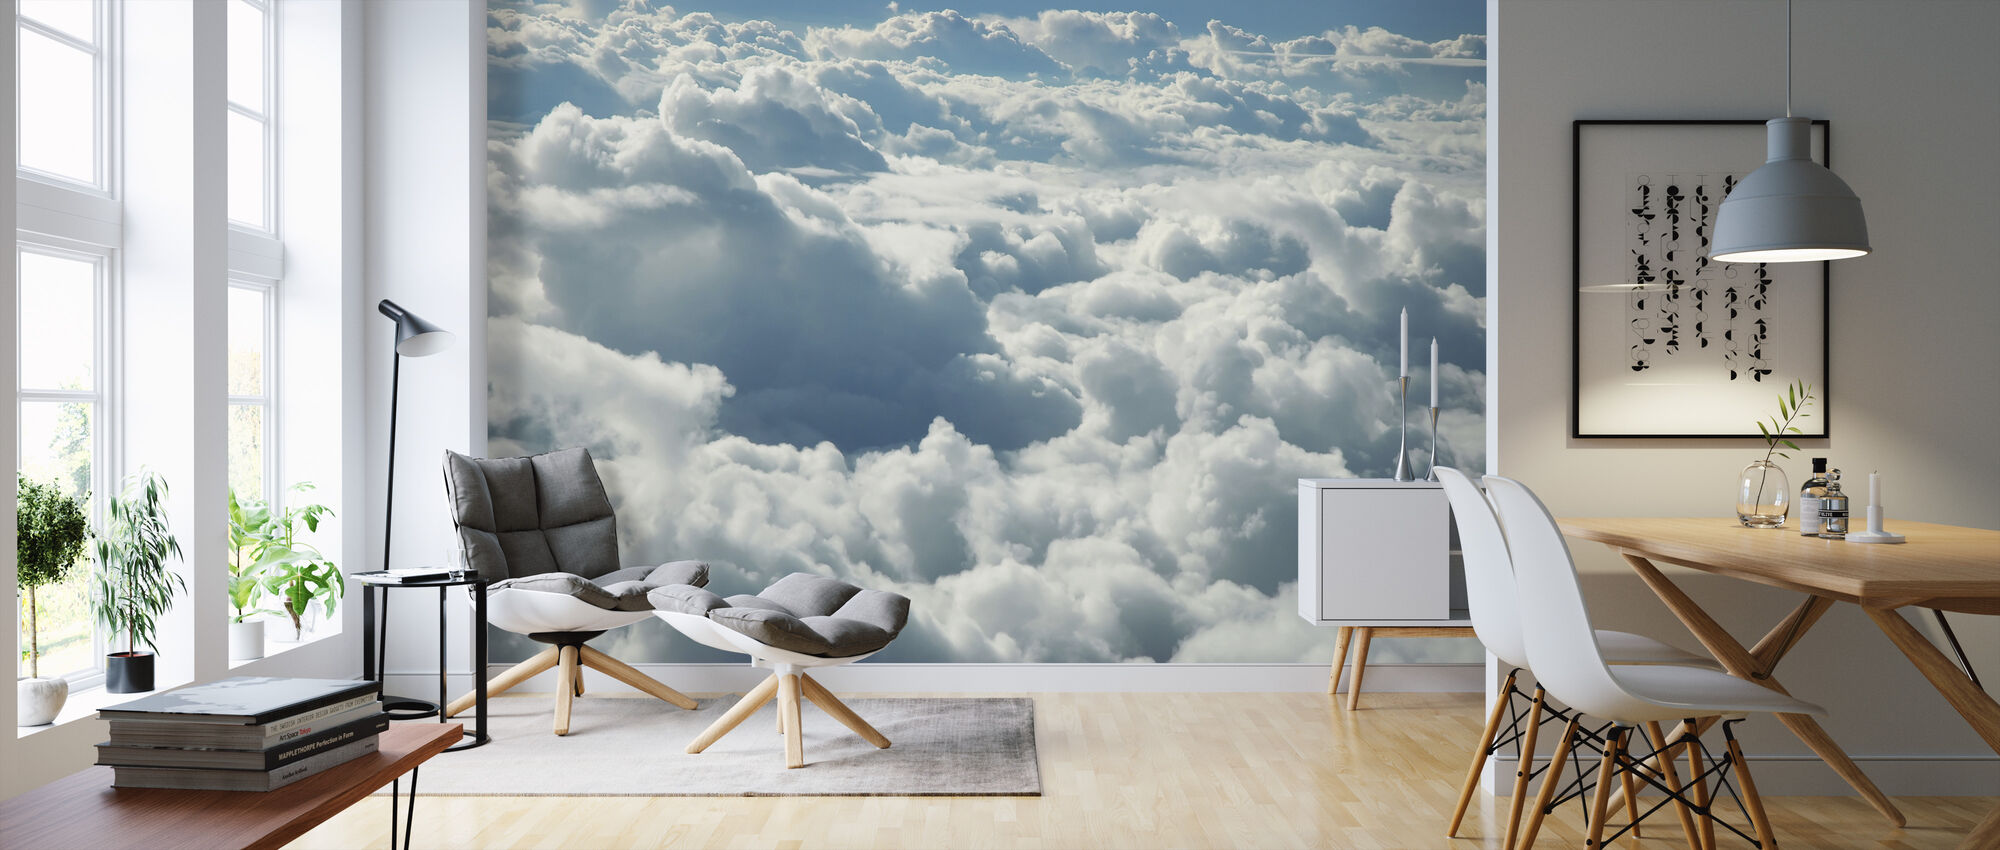 Over Clouds - Wallpaper - Living Room